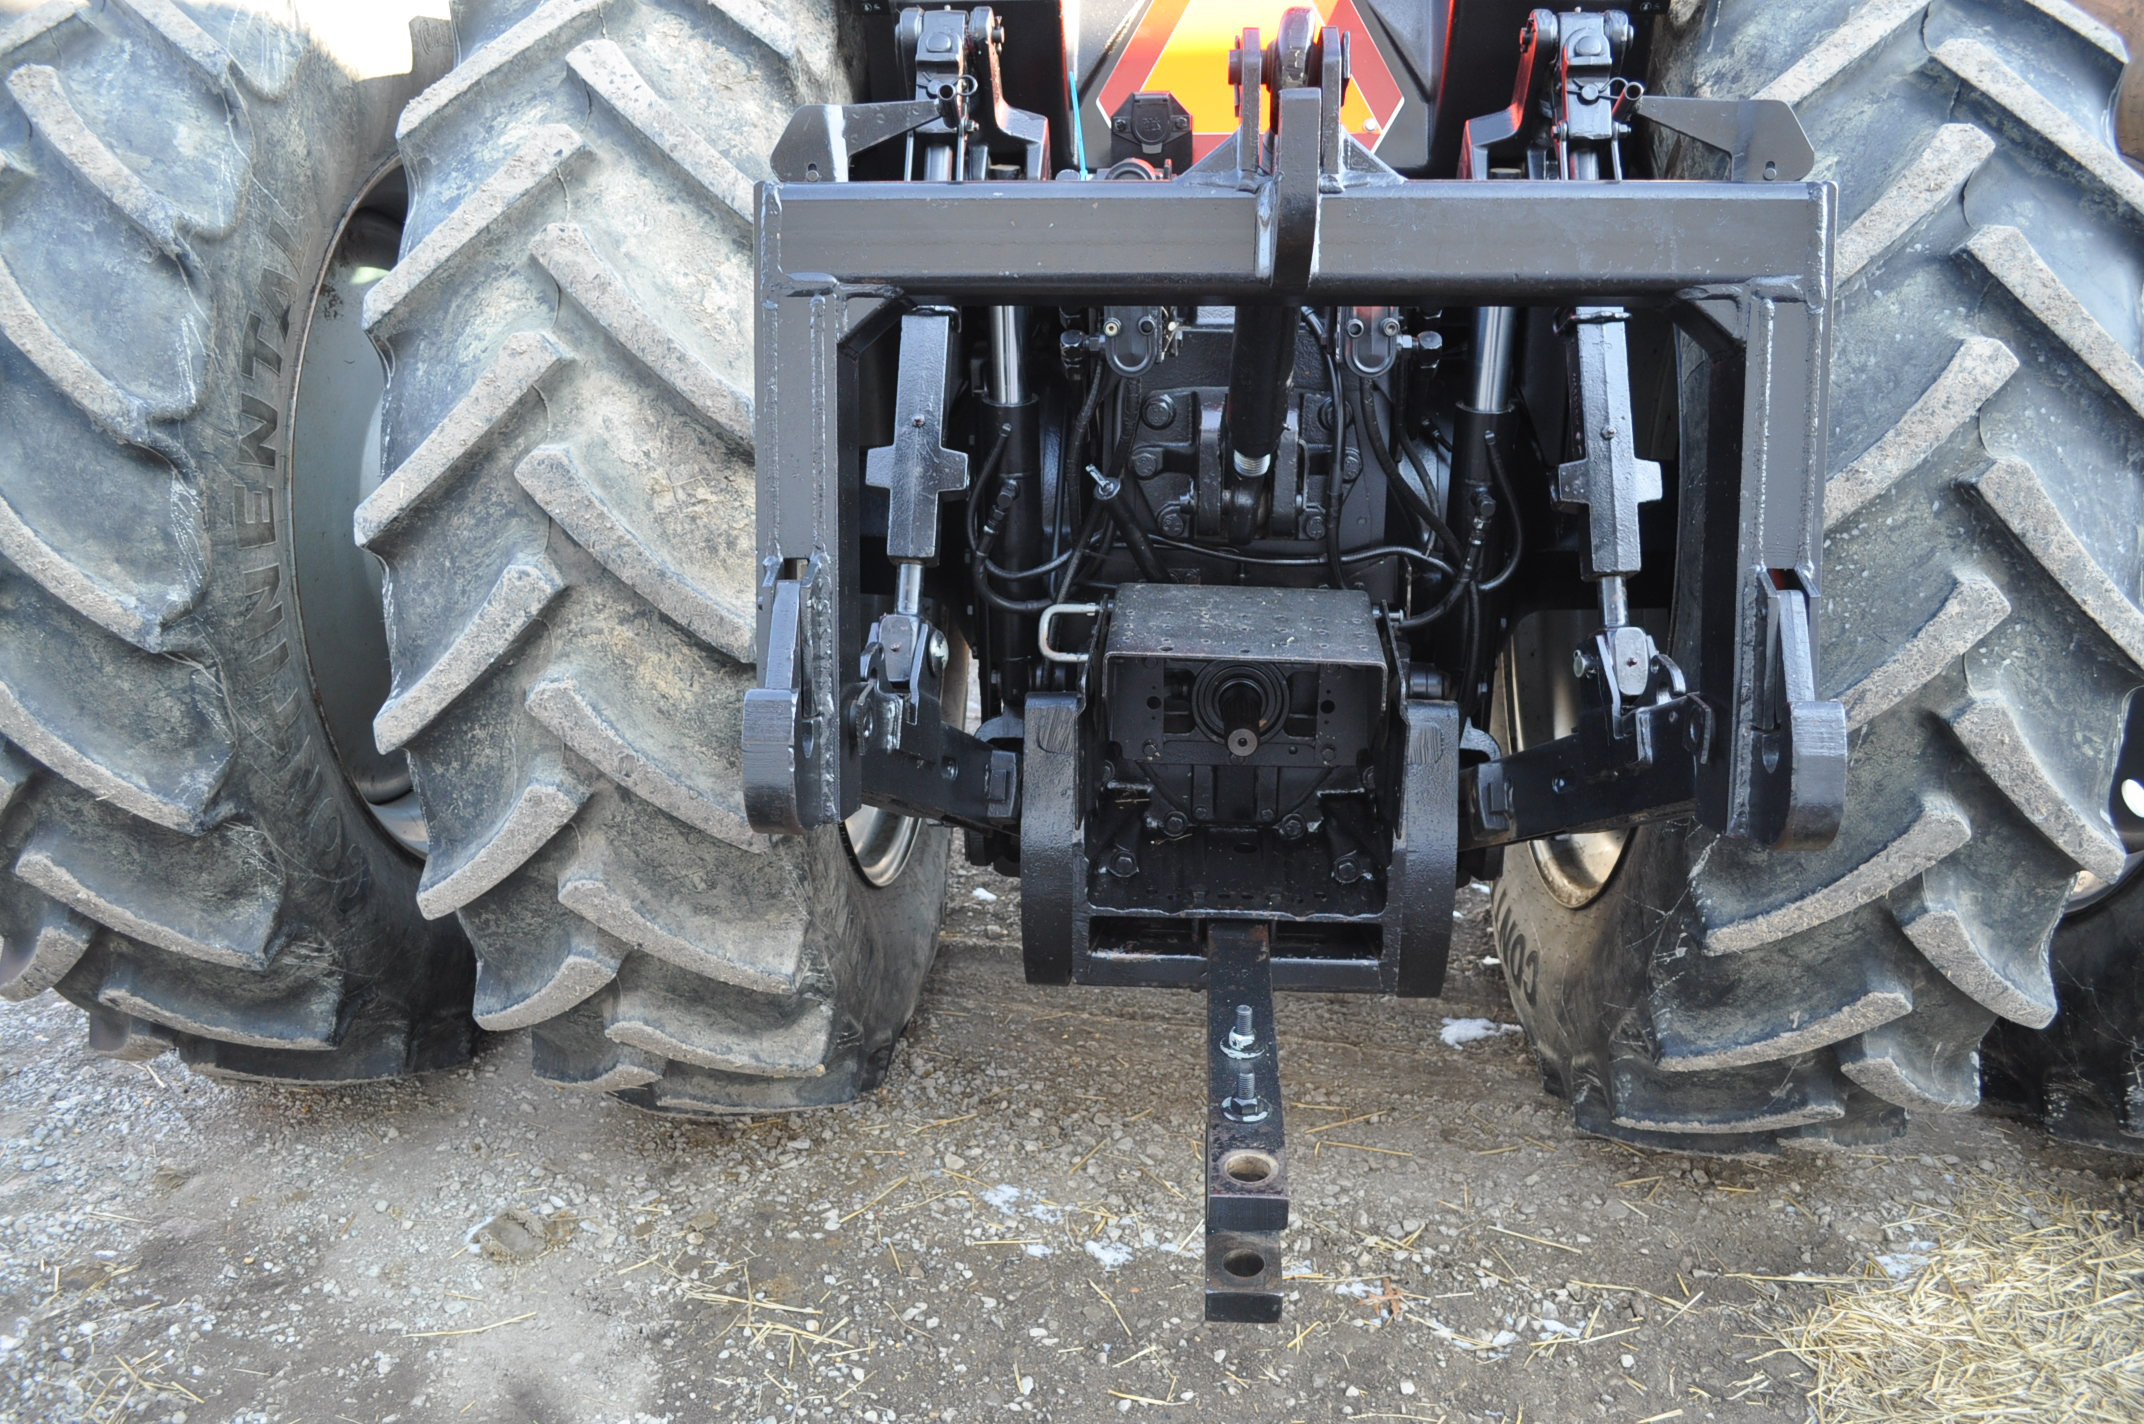 Case IH 7240 MFWD tractor, 460/85R46 rear duals, 420/85R30 front, 18 spd powershift, 4 reverse, - Image 10 of 20